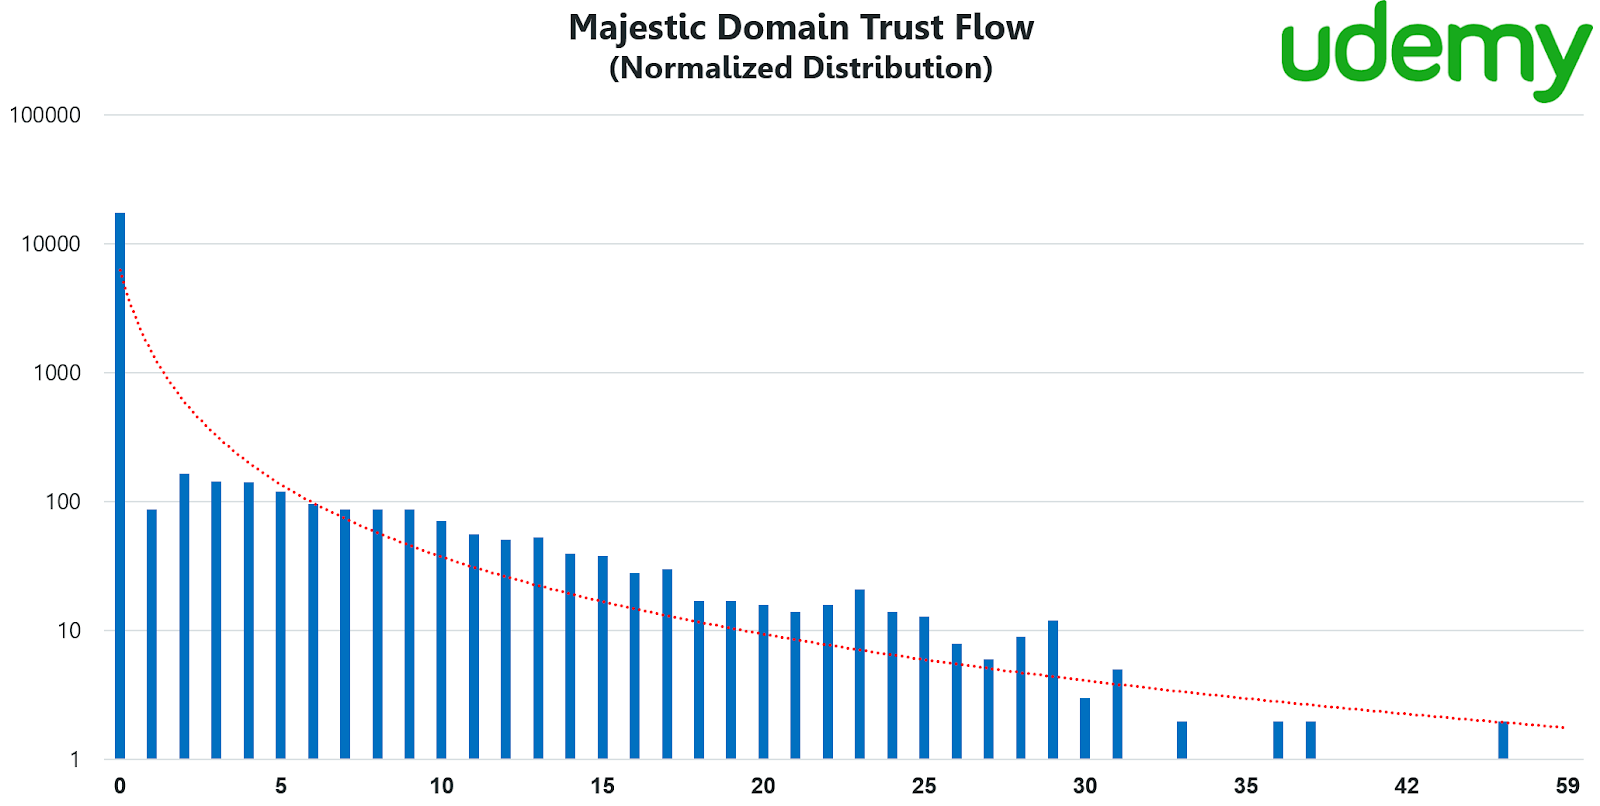 Majestic domain trust flow